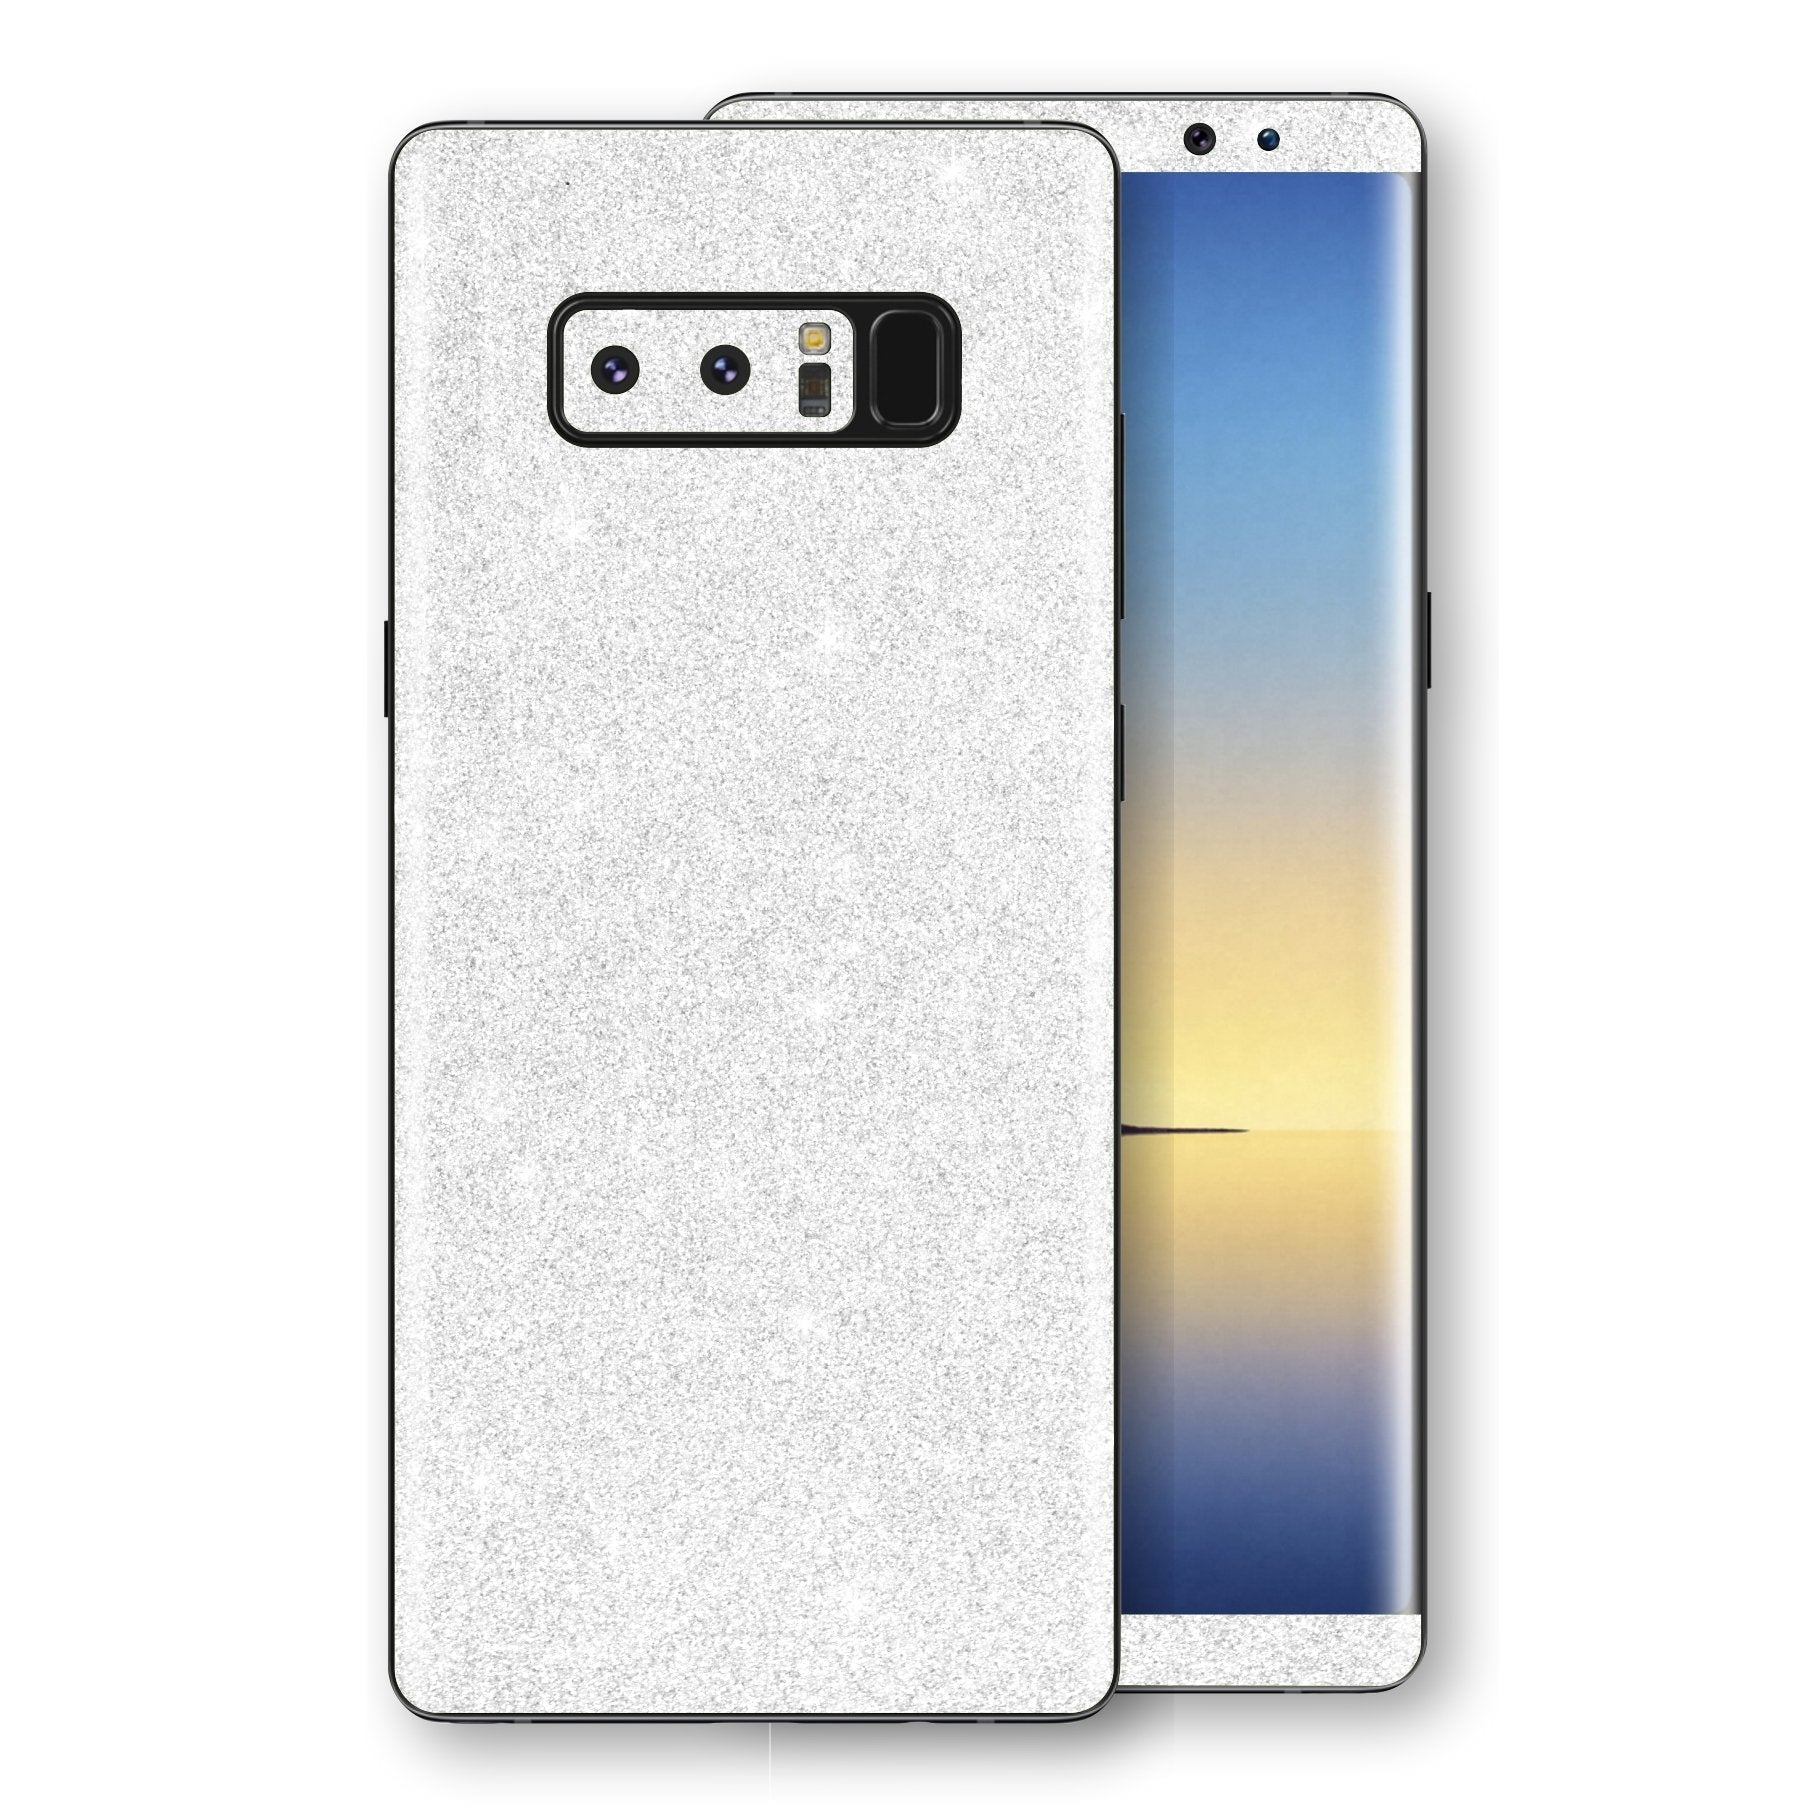 Samsung Galaxy NOTE 8 Diamond White Shimmering, Sparkling, Glitter Skin, Decal, Wrap, Protector, Cover by EasySkinz | EasySkinz.com